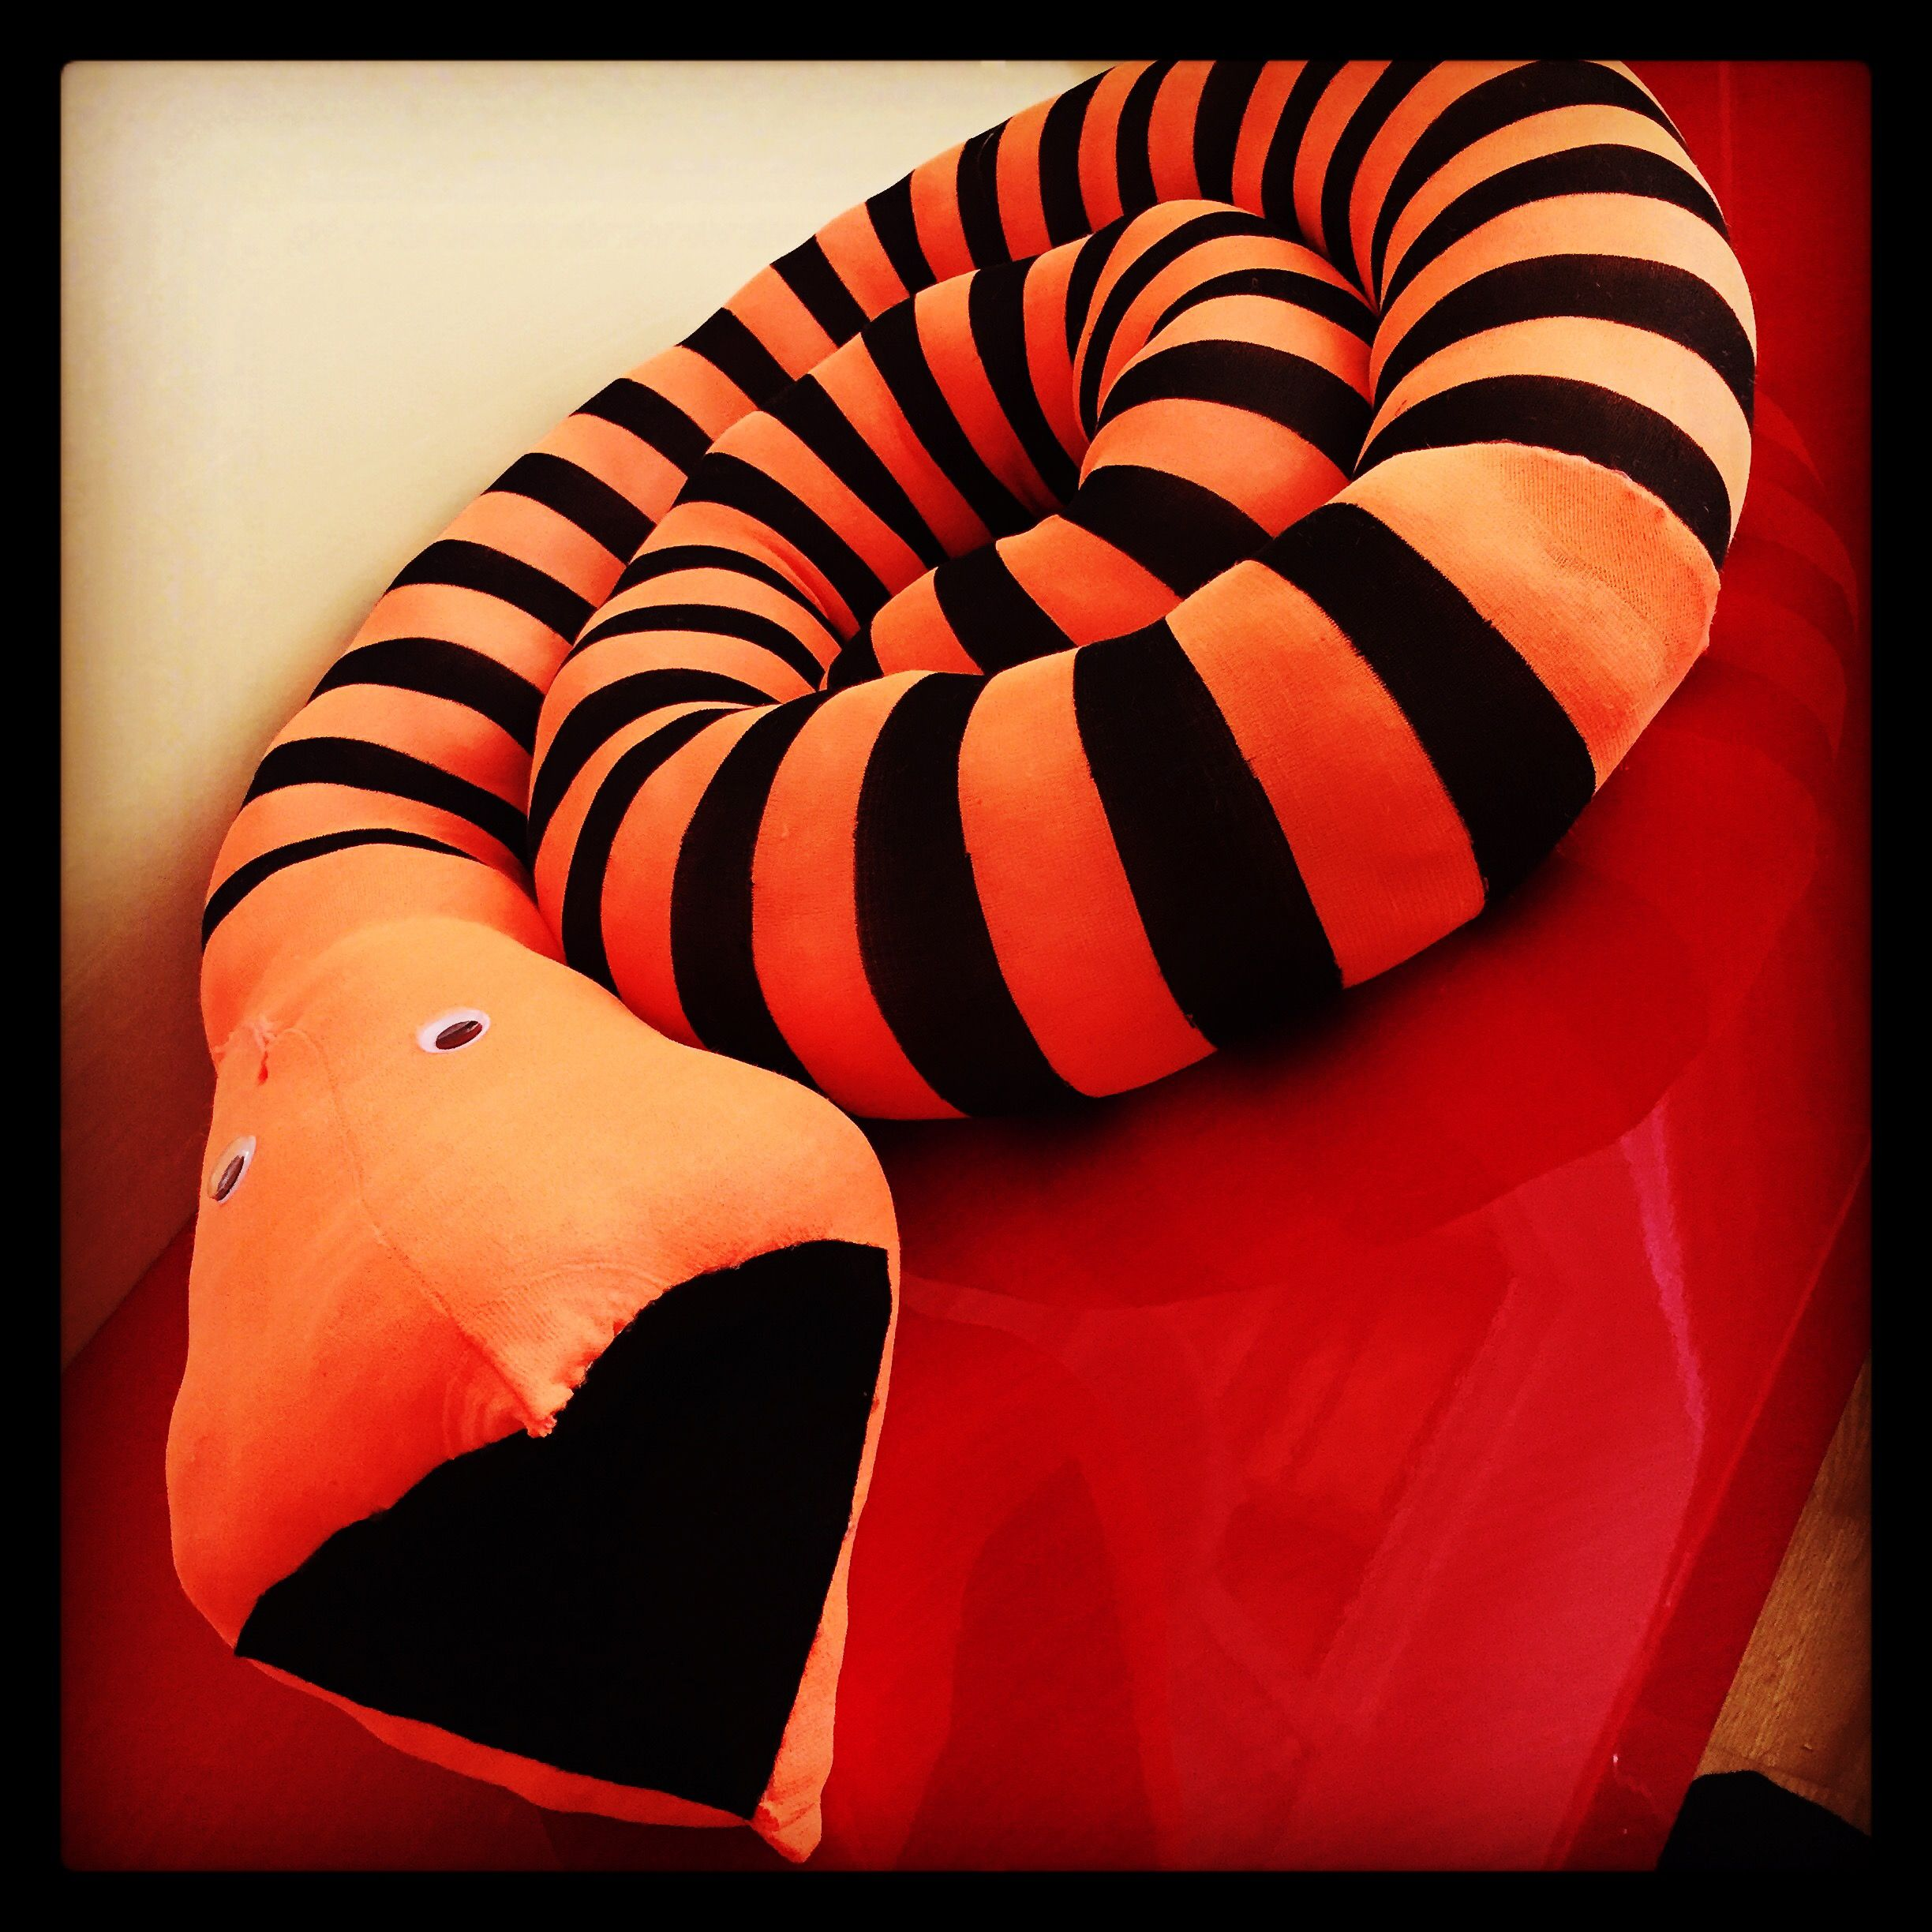 Nightmare before Christmas orange and black stripped snake ...